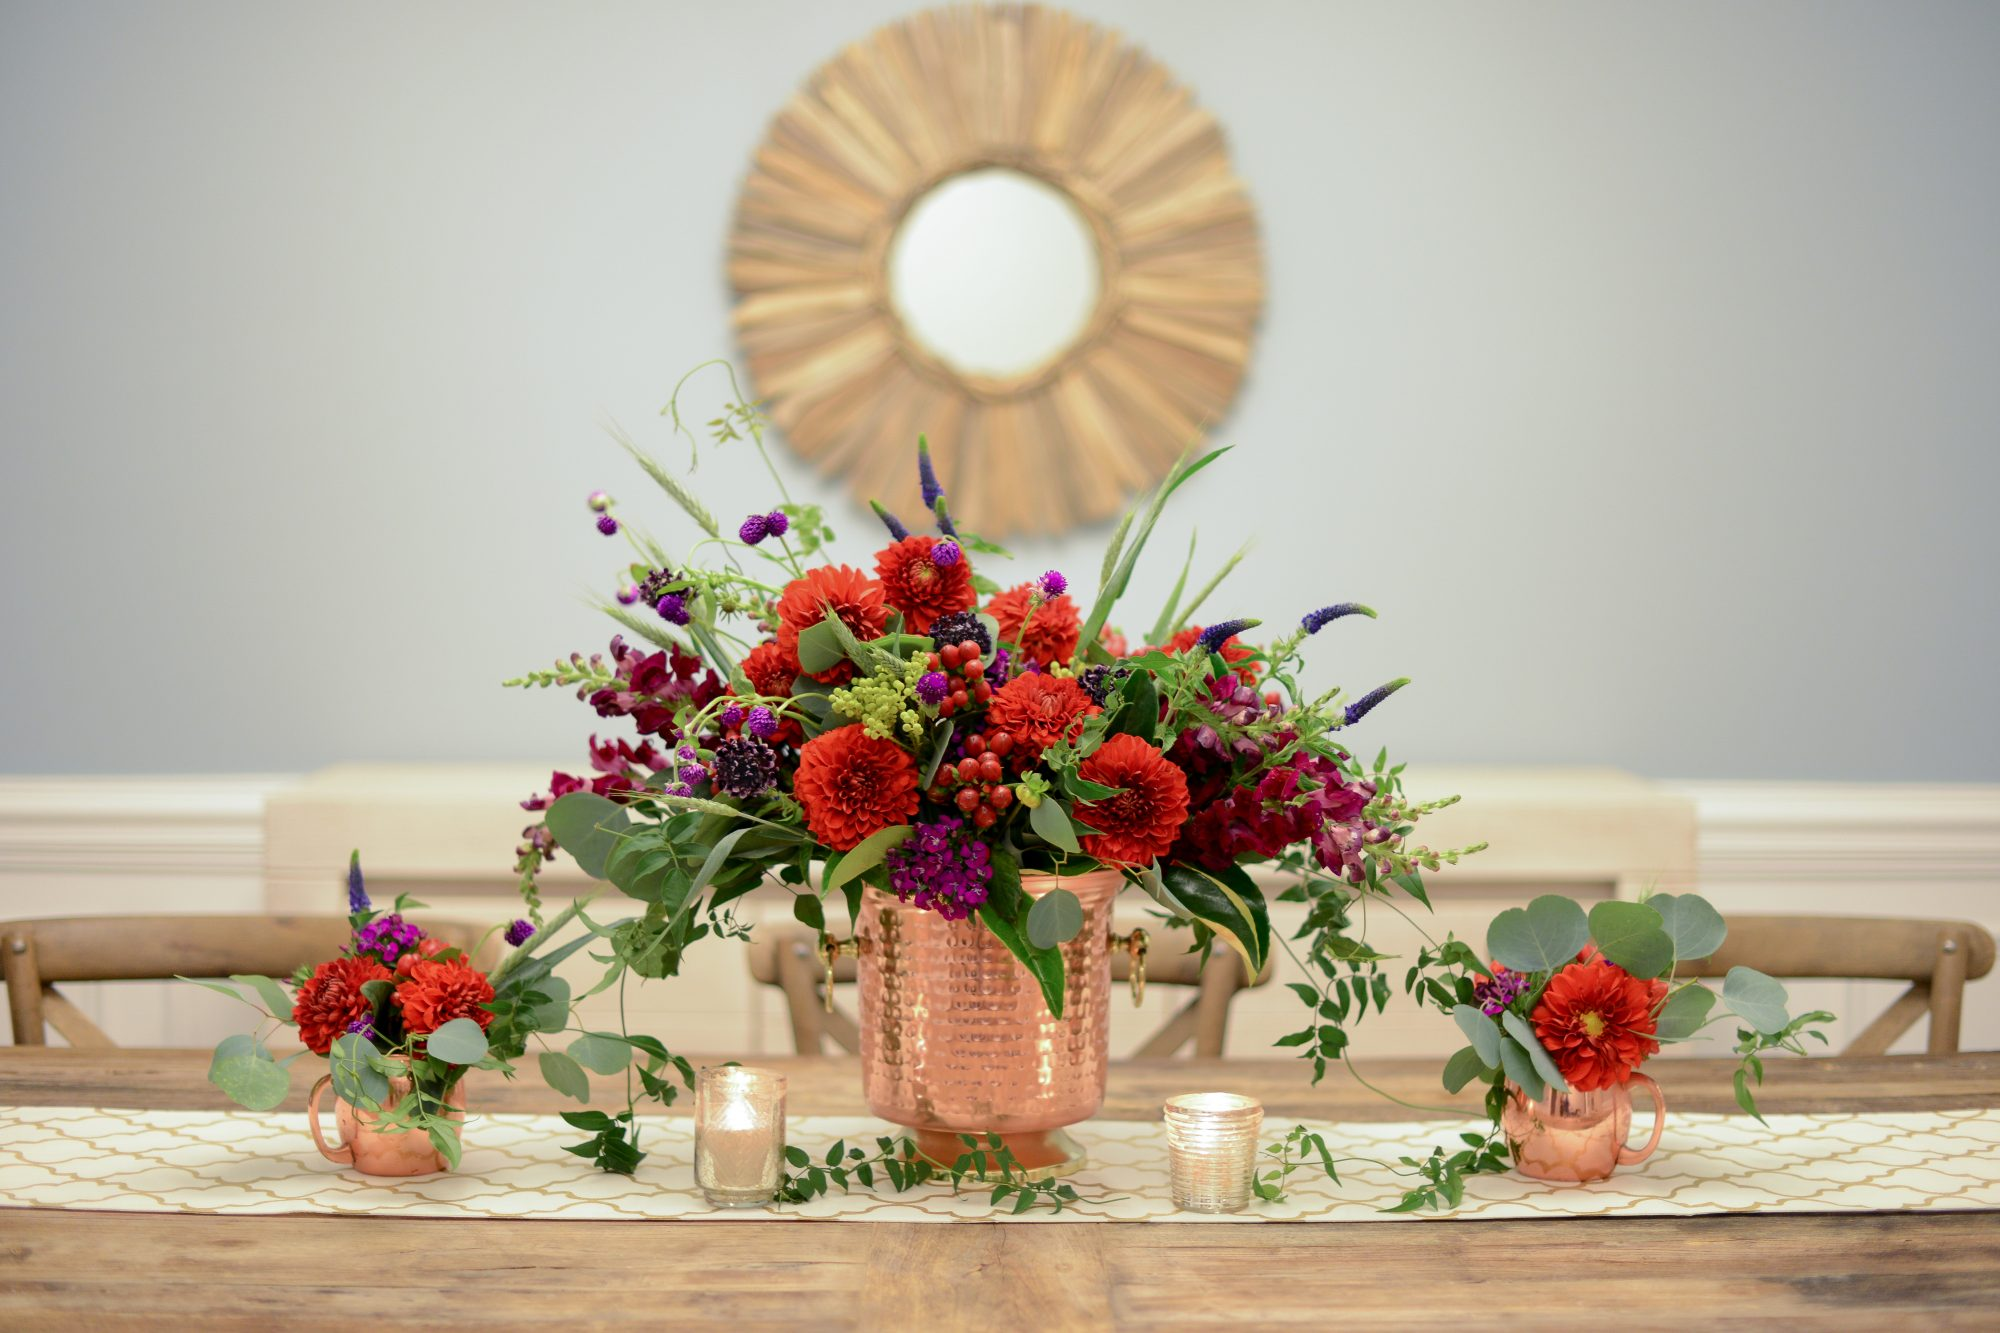 Flowers Arrangement Pictures 10 thanksgiving flower arrangement ideas from the pros | real simple